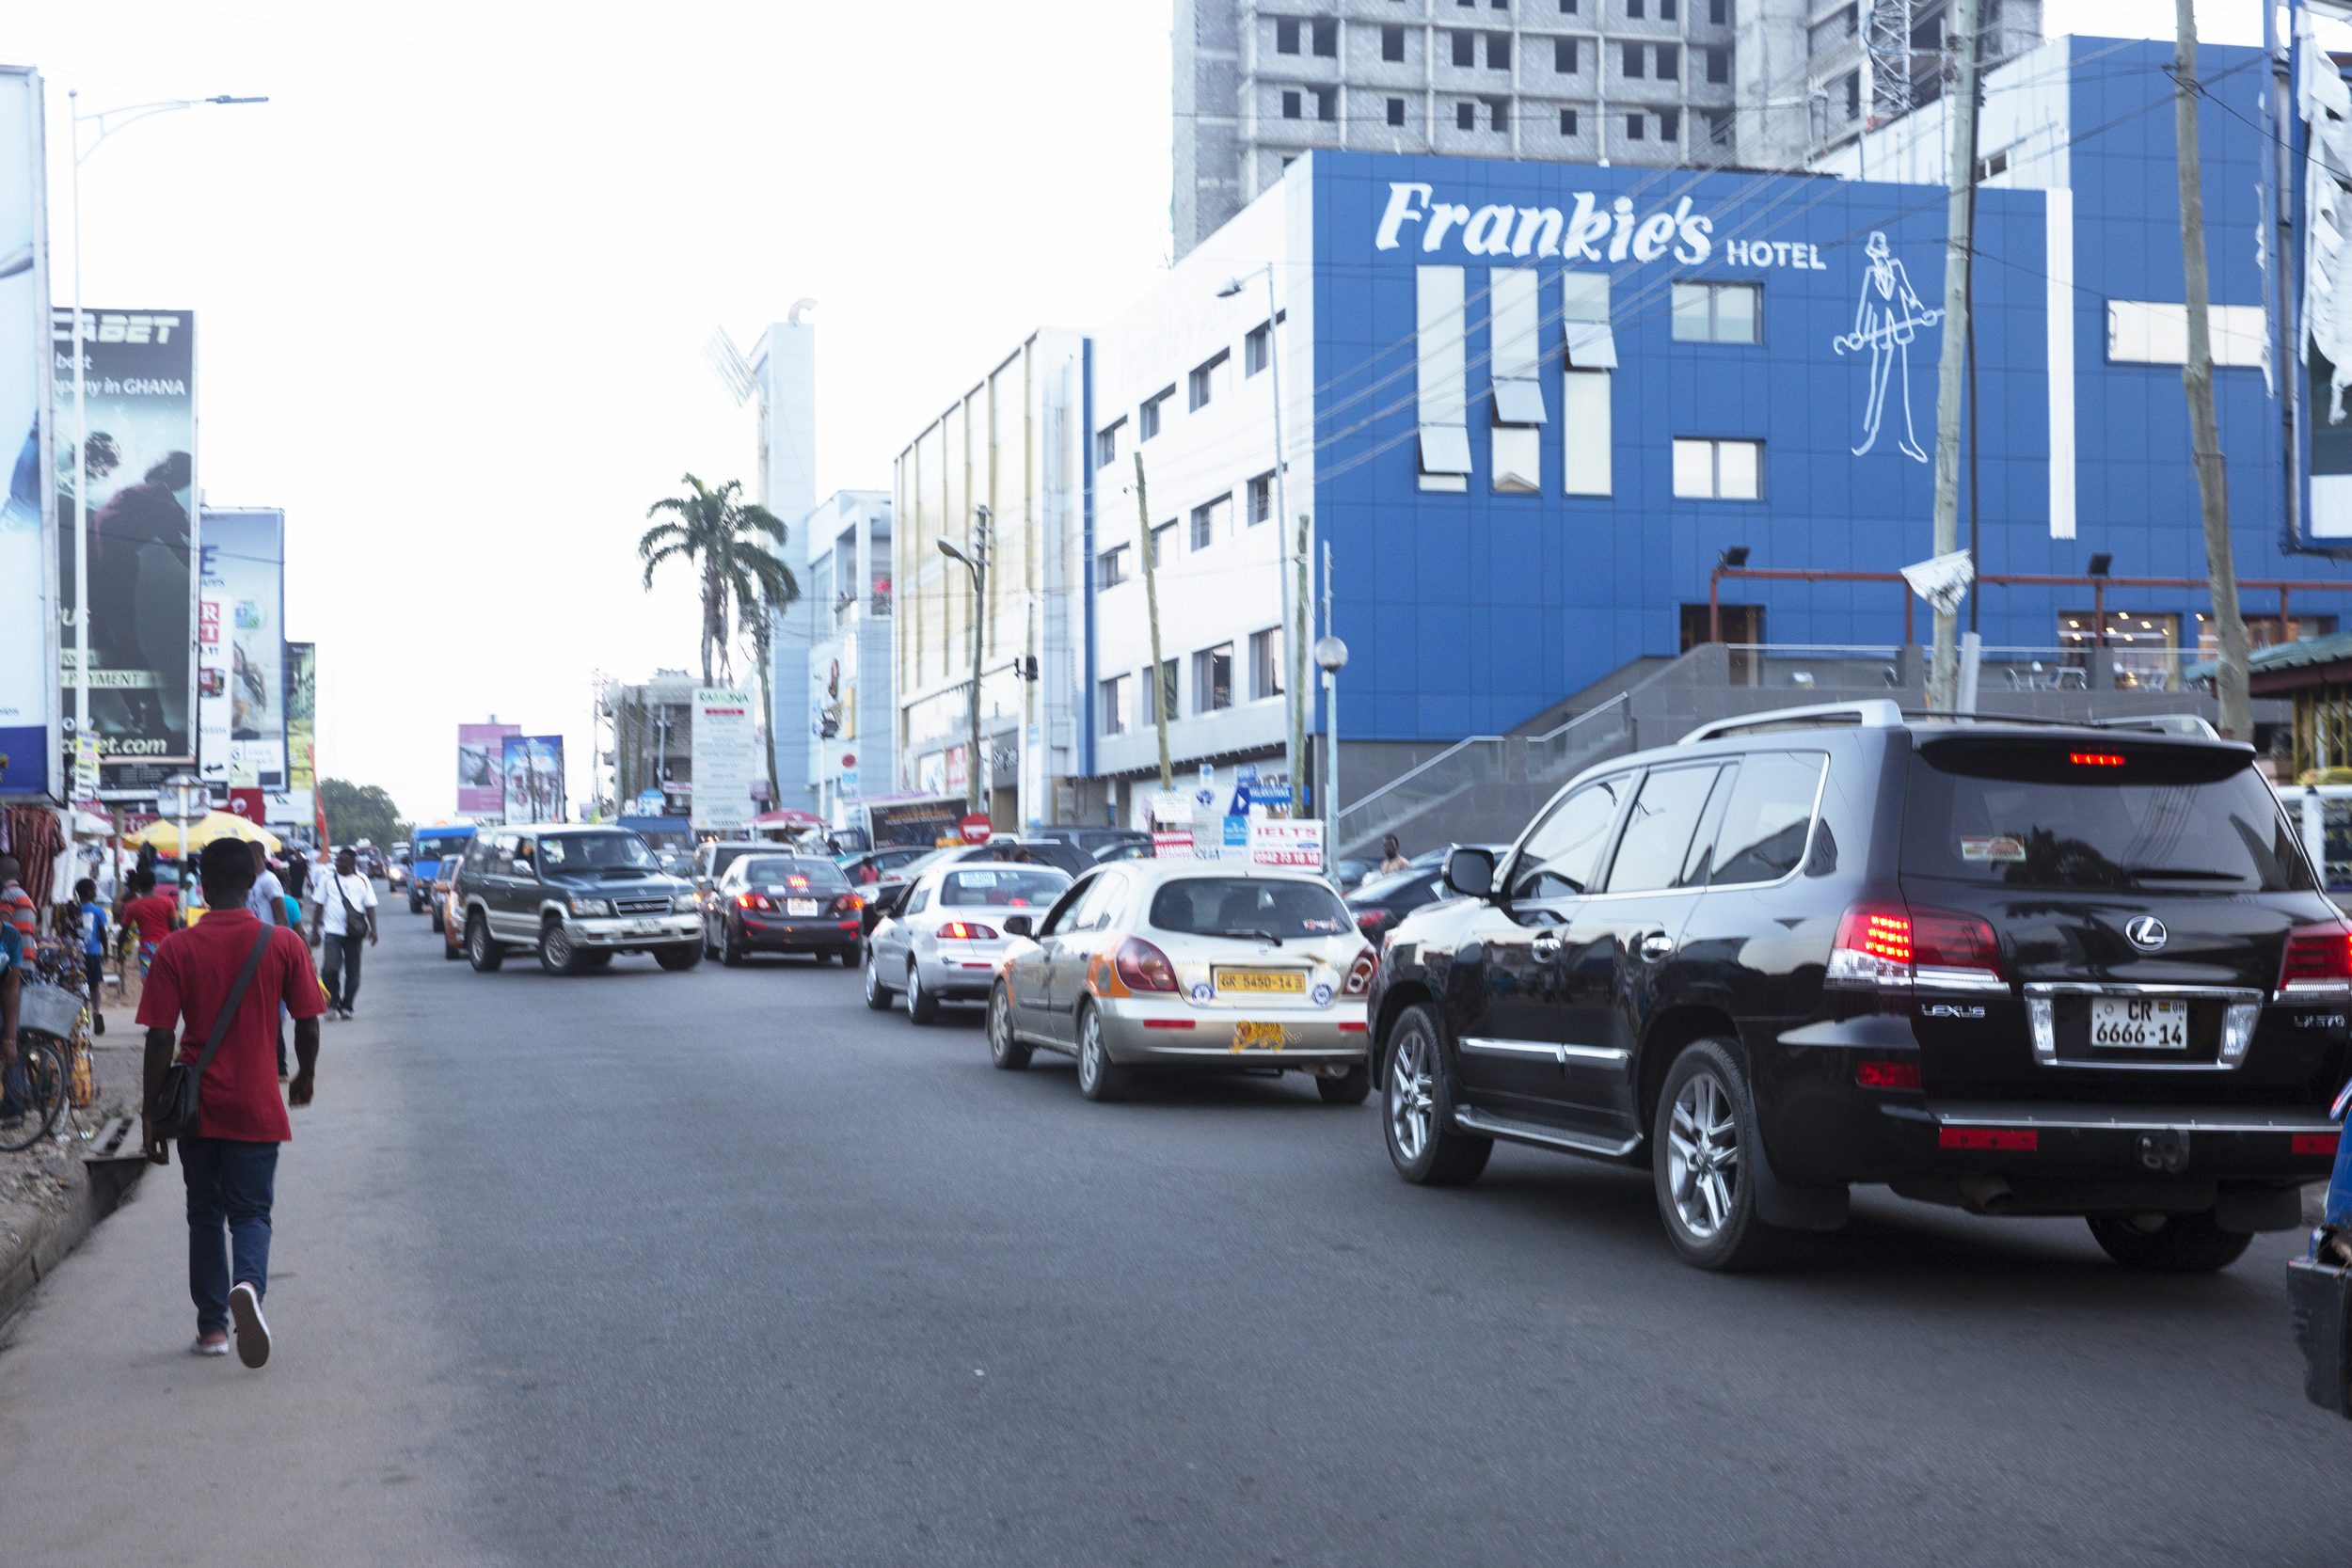 Oxford Street (mirrored after the one in London)in Osu:one of the nicest neighborhoods in Accra.